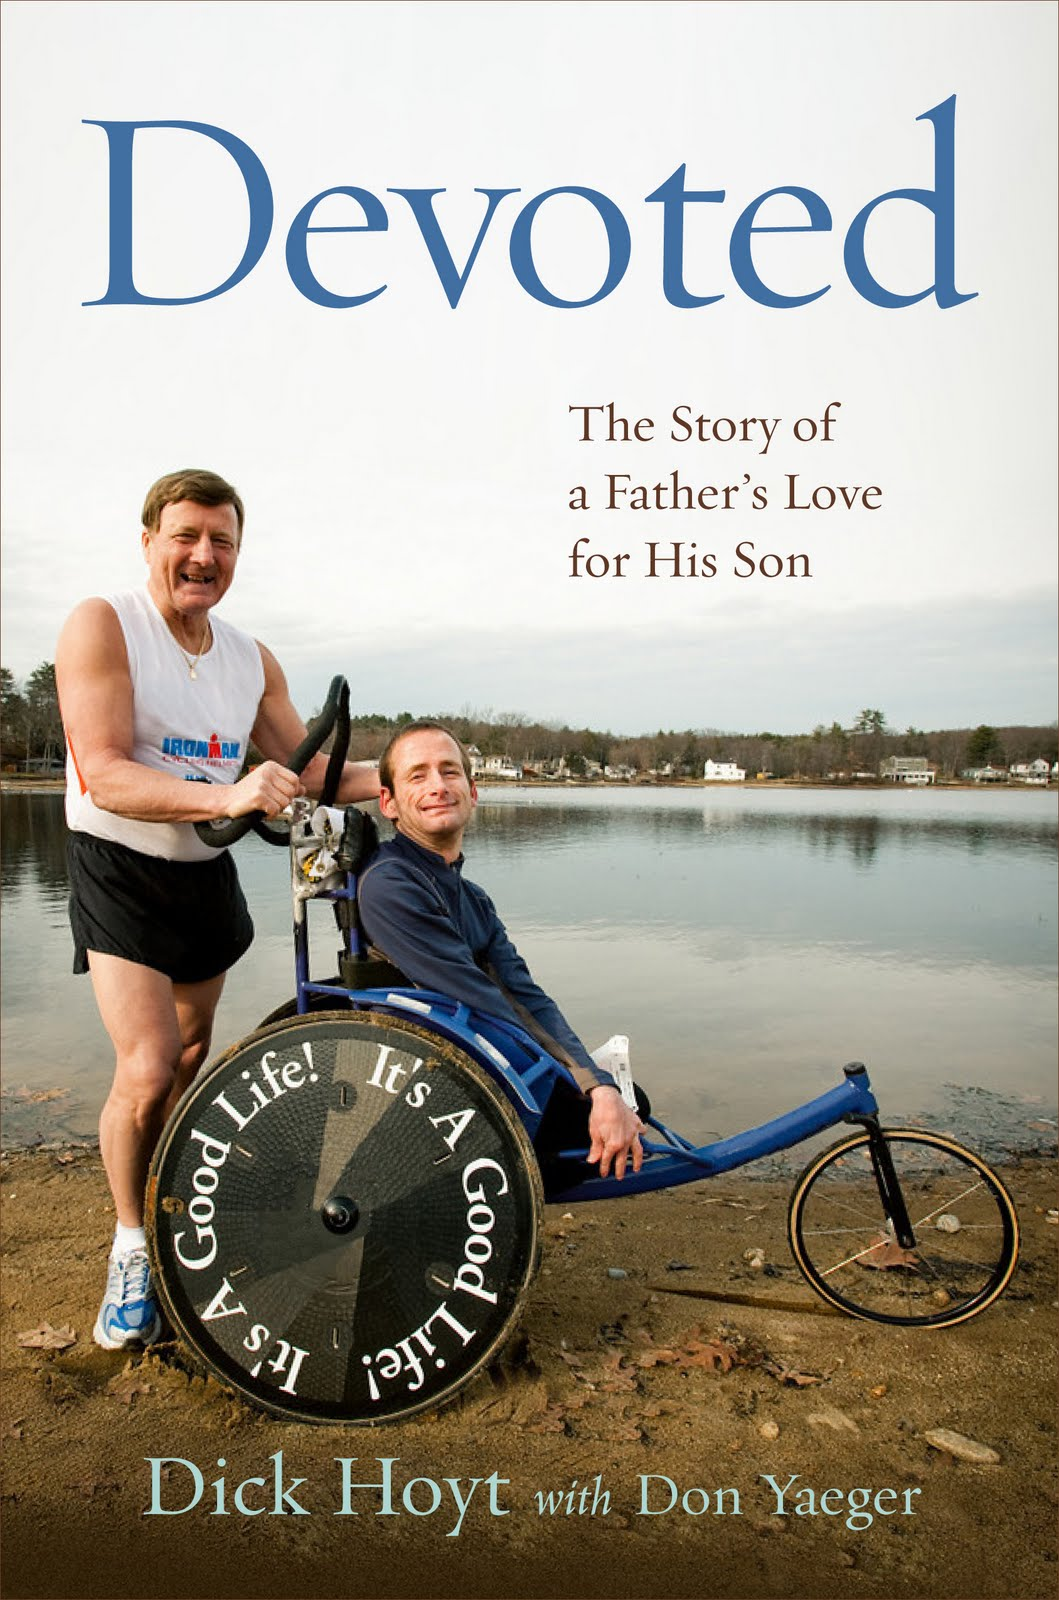 The Story of a Father's Love for his son